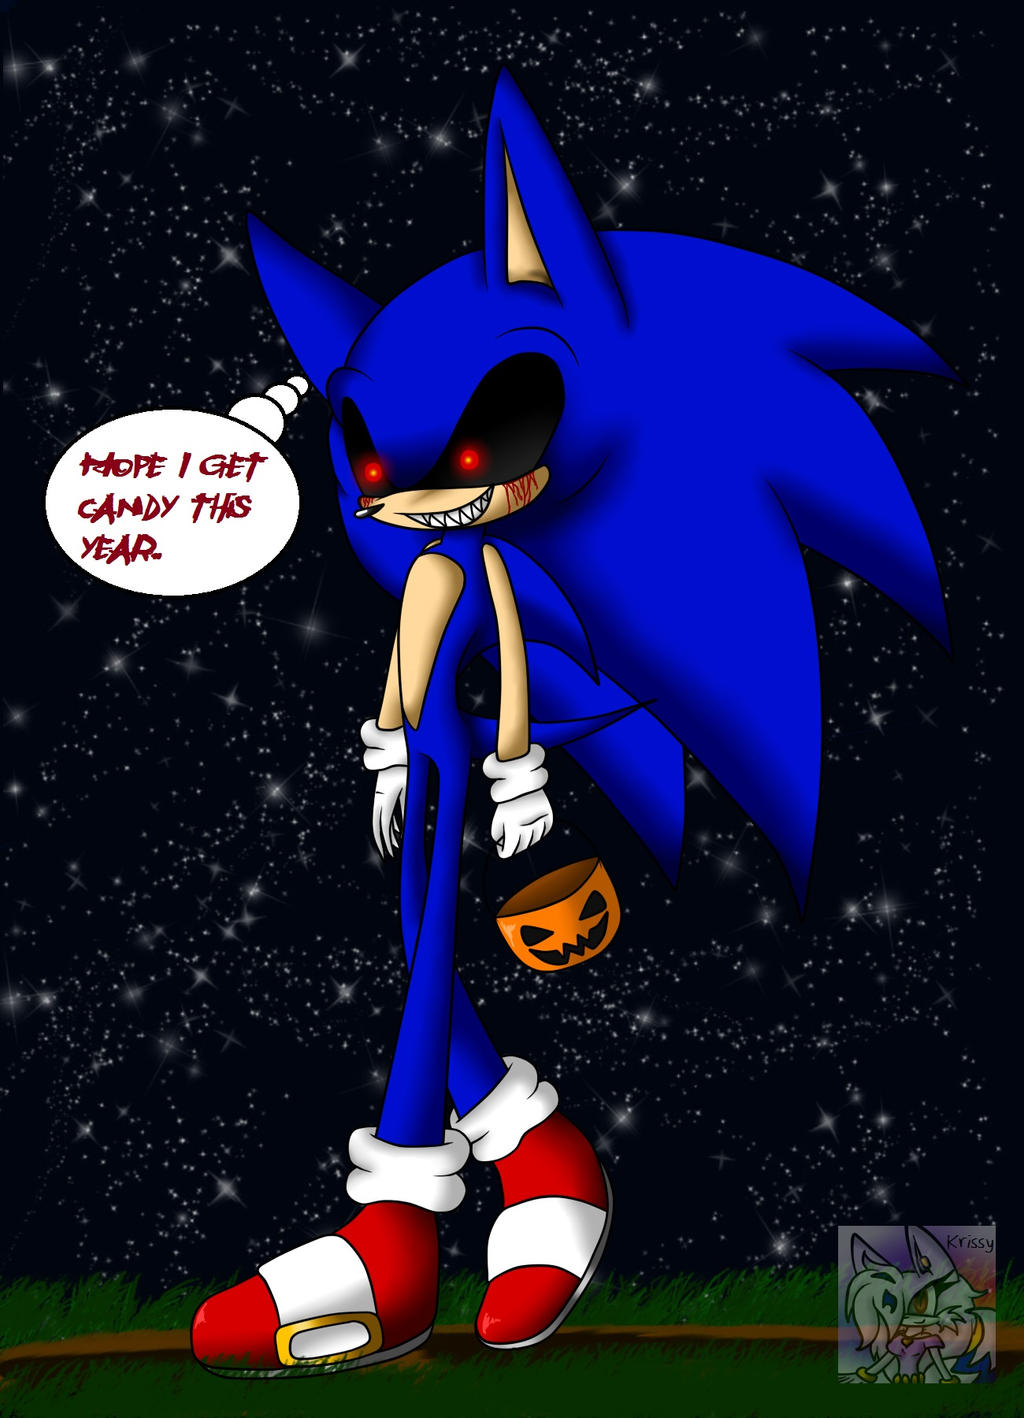 Sonic exe picture by sonicsonic1 on deviantart - Trick N Treating Tonight Sonic Exe By Sonicsonic1 On